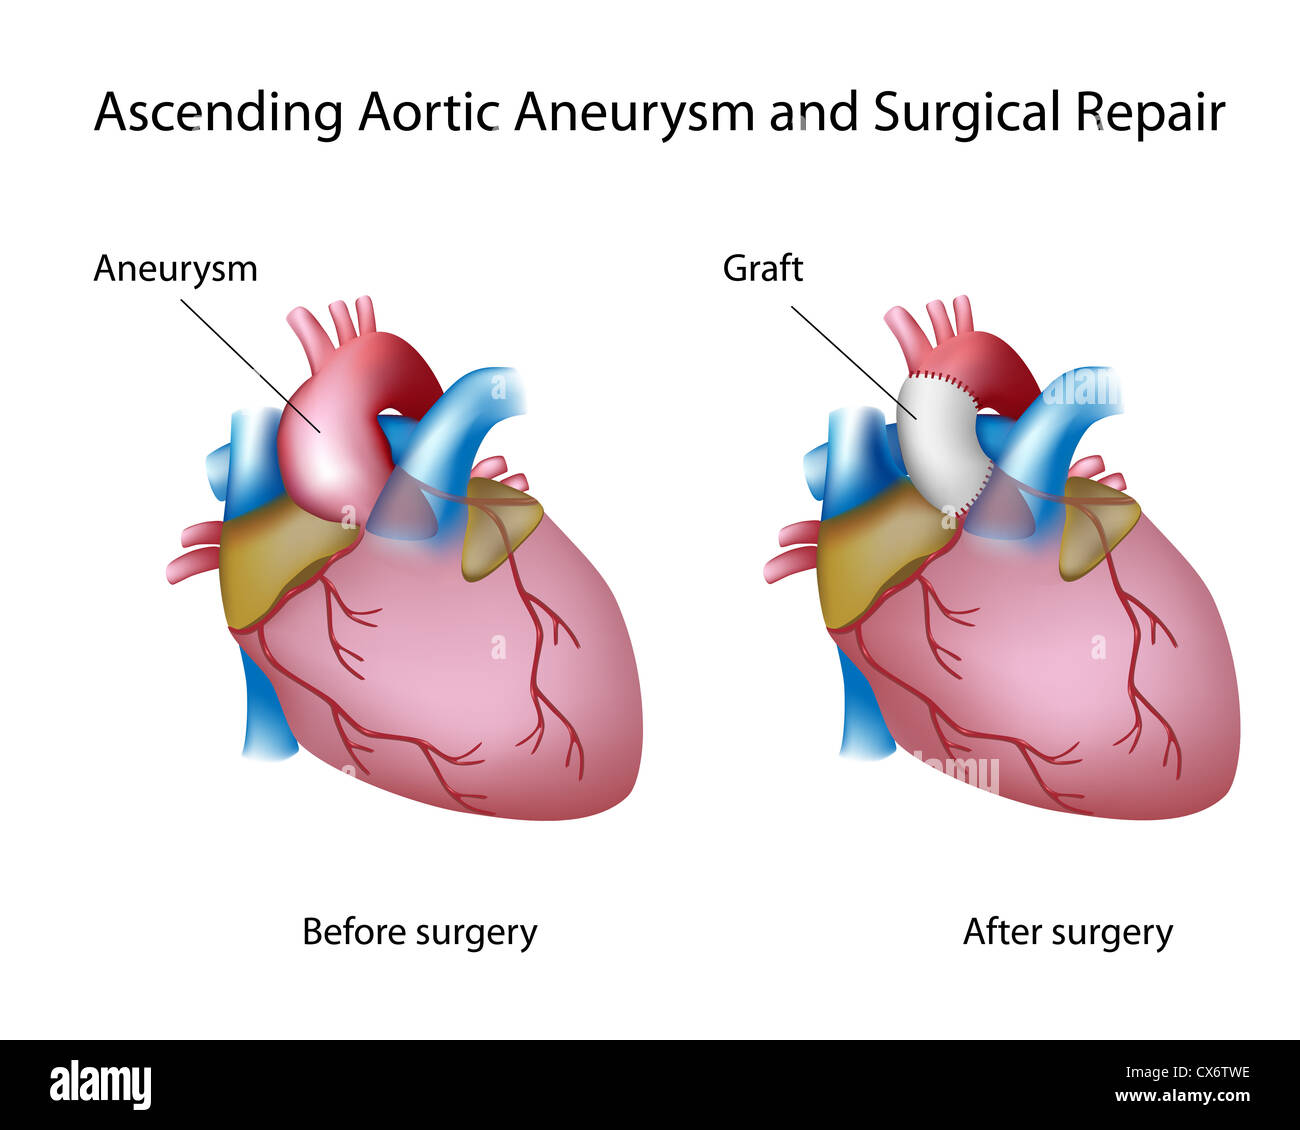 Ascending Aortic Aneurysm And Open Surgery Stock Photo 50553034 Alamy